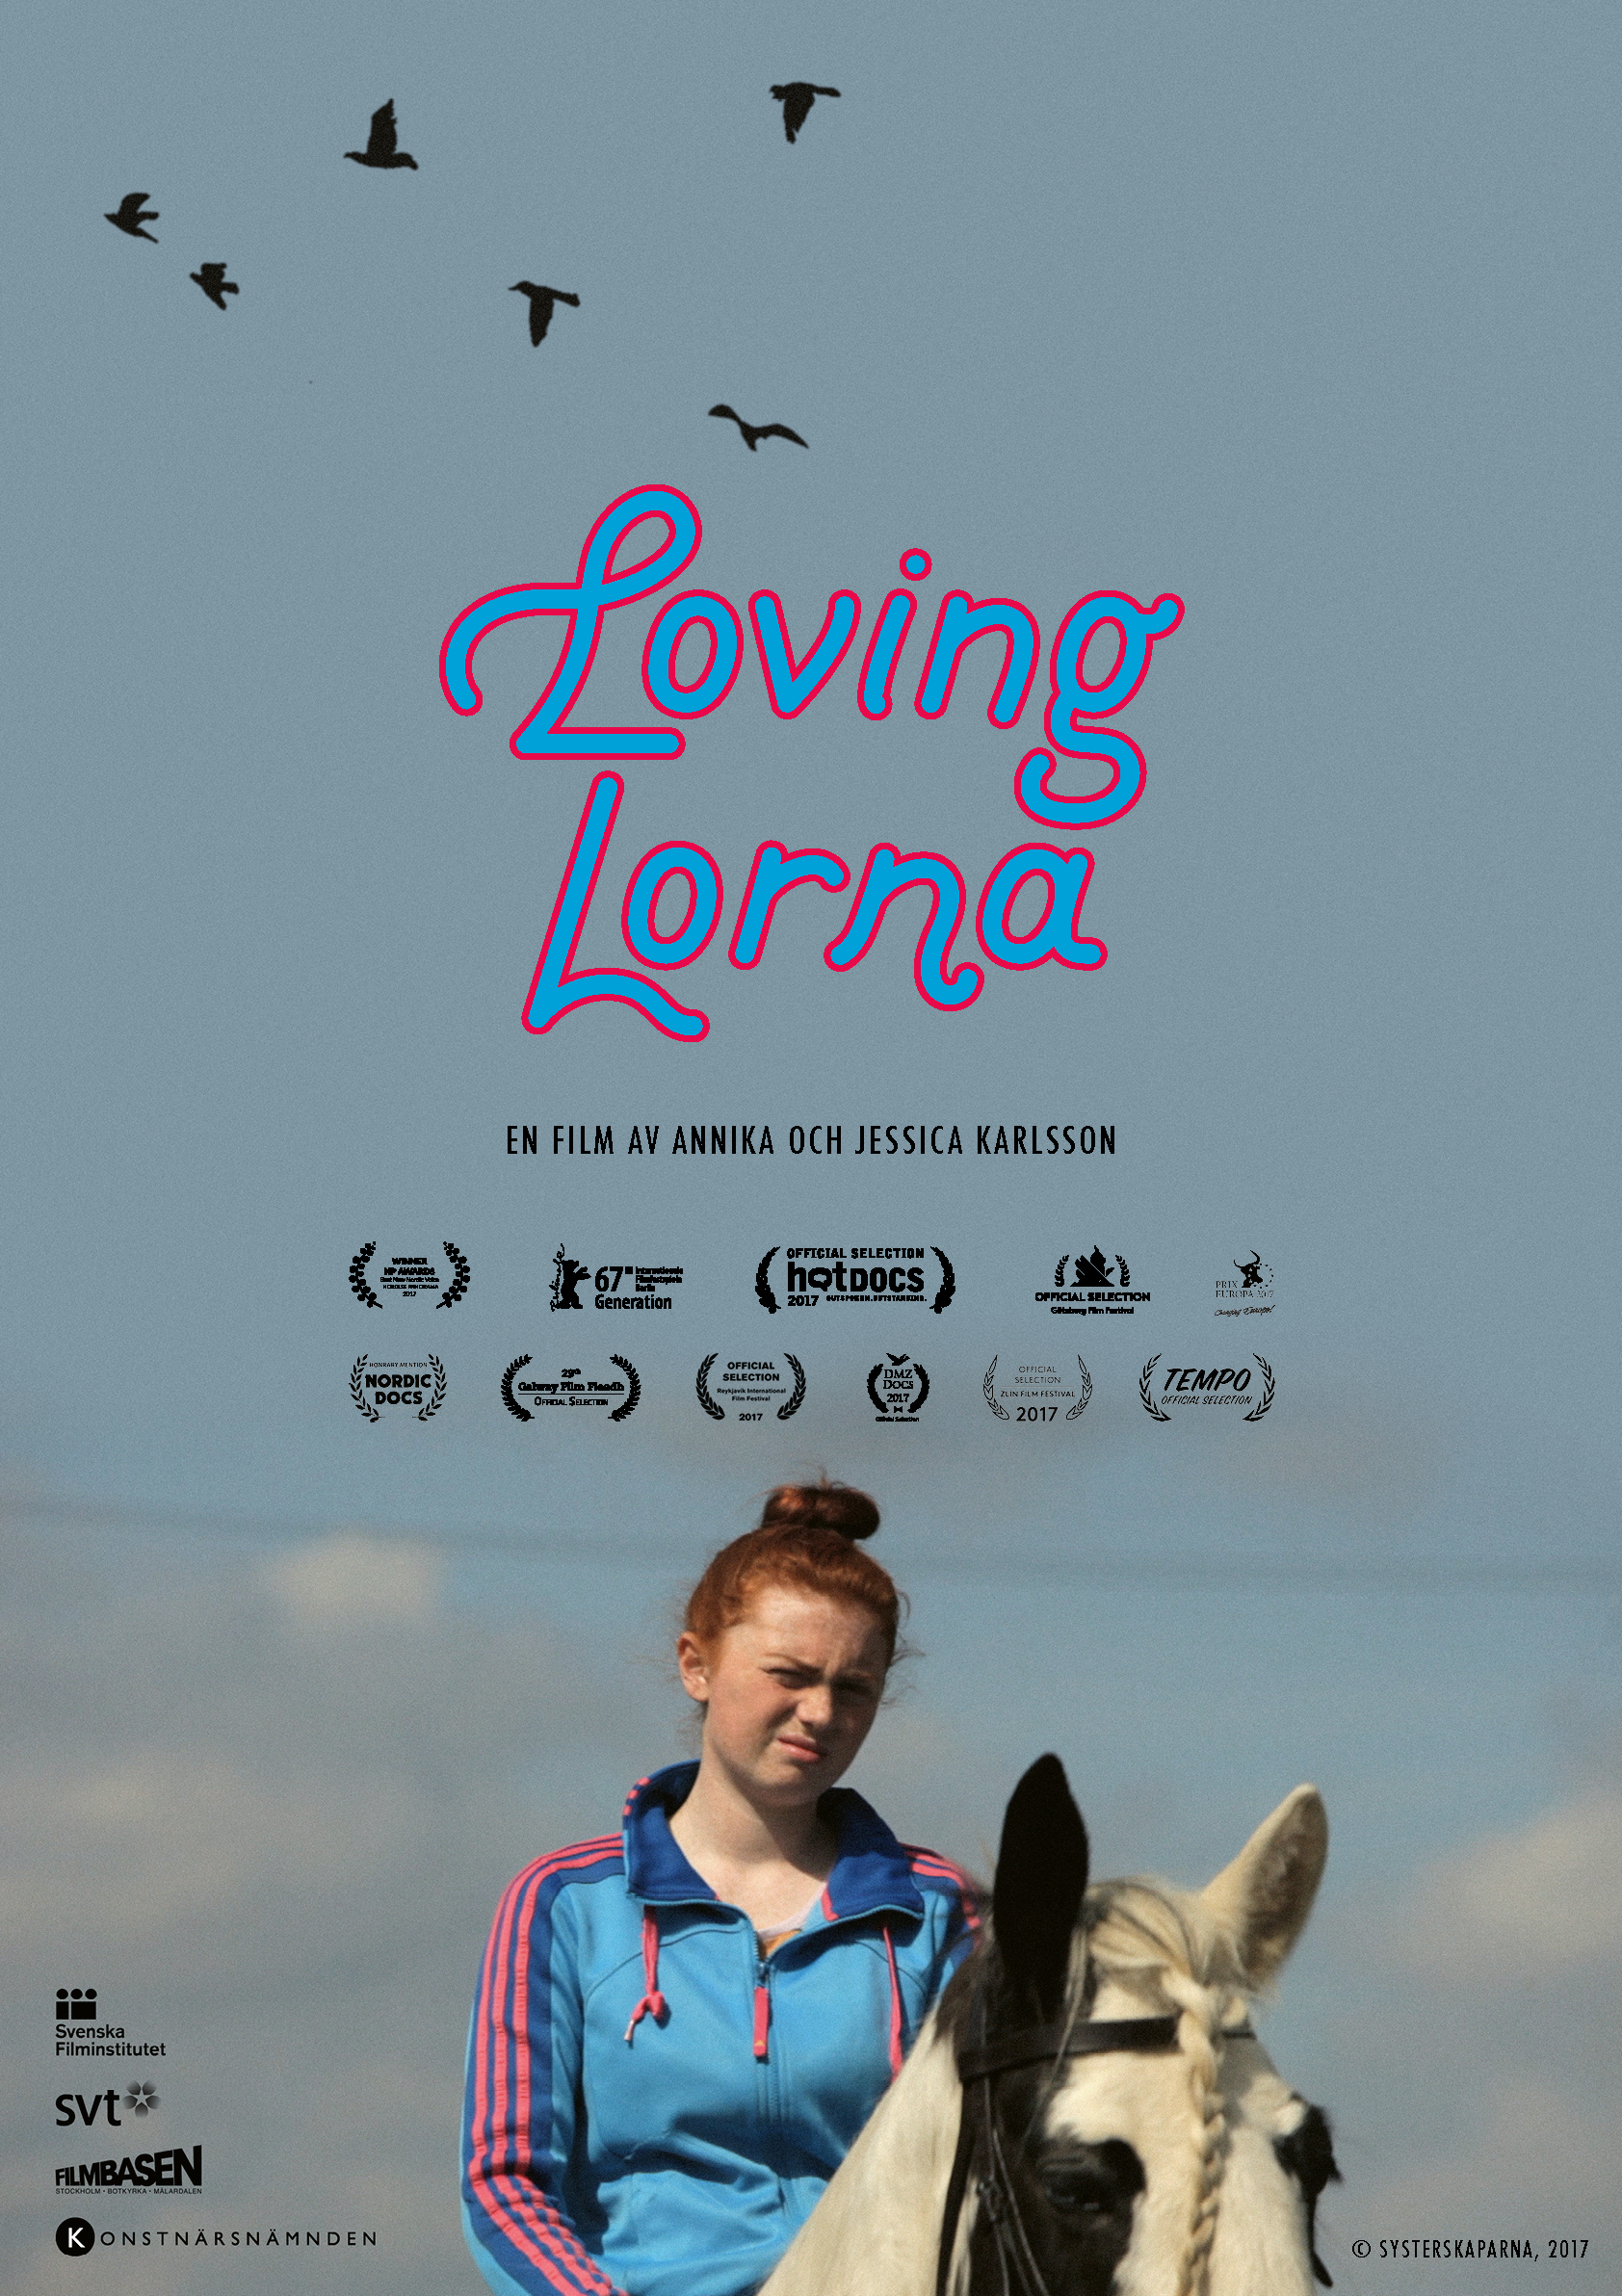 Buy a Loving Lorna poster! - We now have posters for sale, buy one and get some horsepower in your house!Size: 100 x 70 cm. Price: 230 kr (within Sweden) Contact us here!